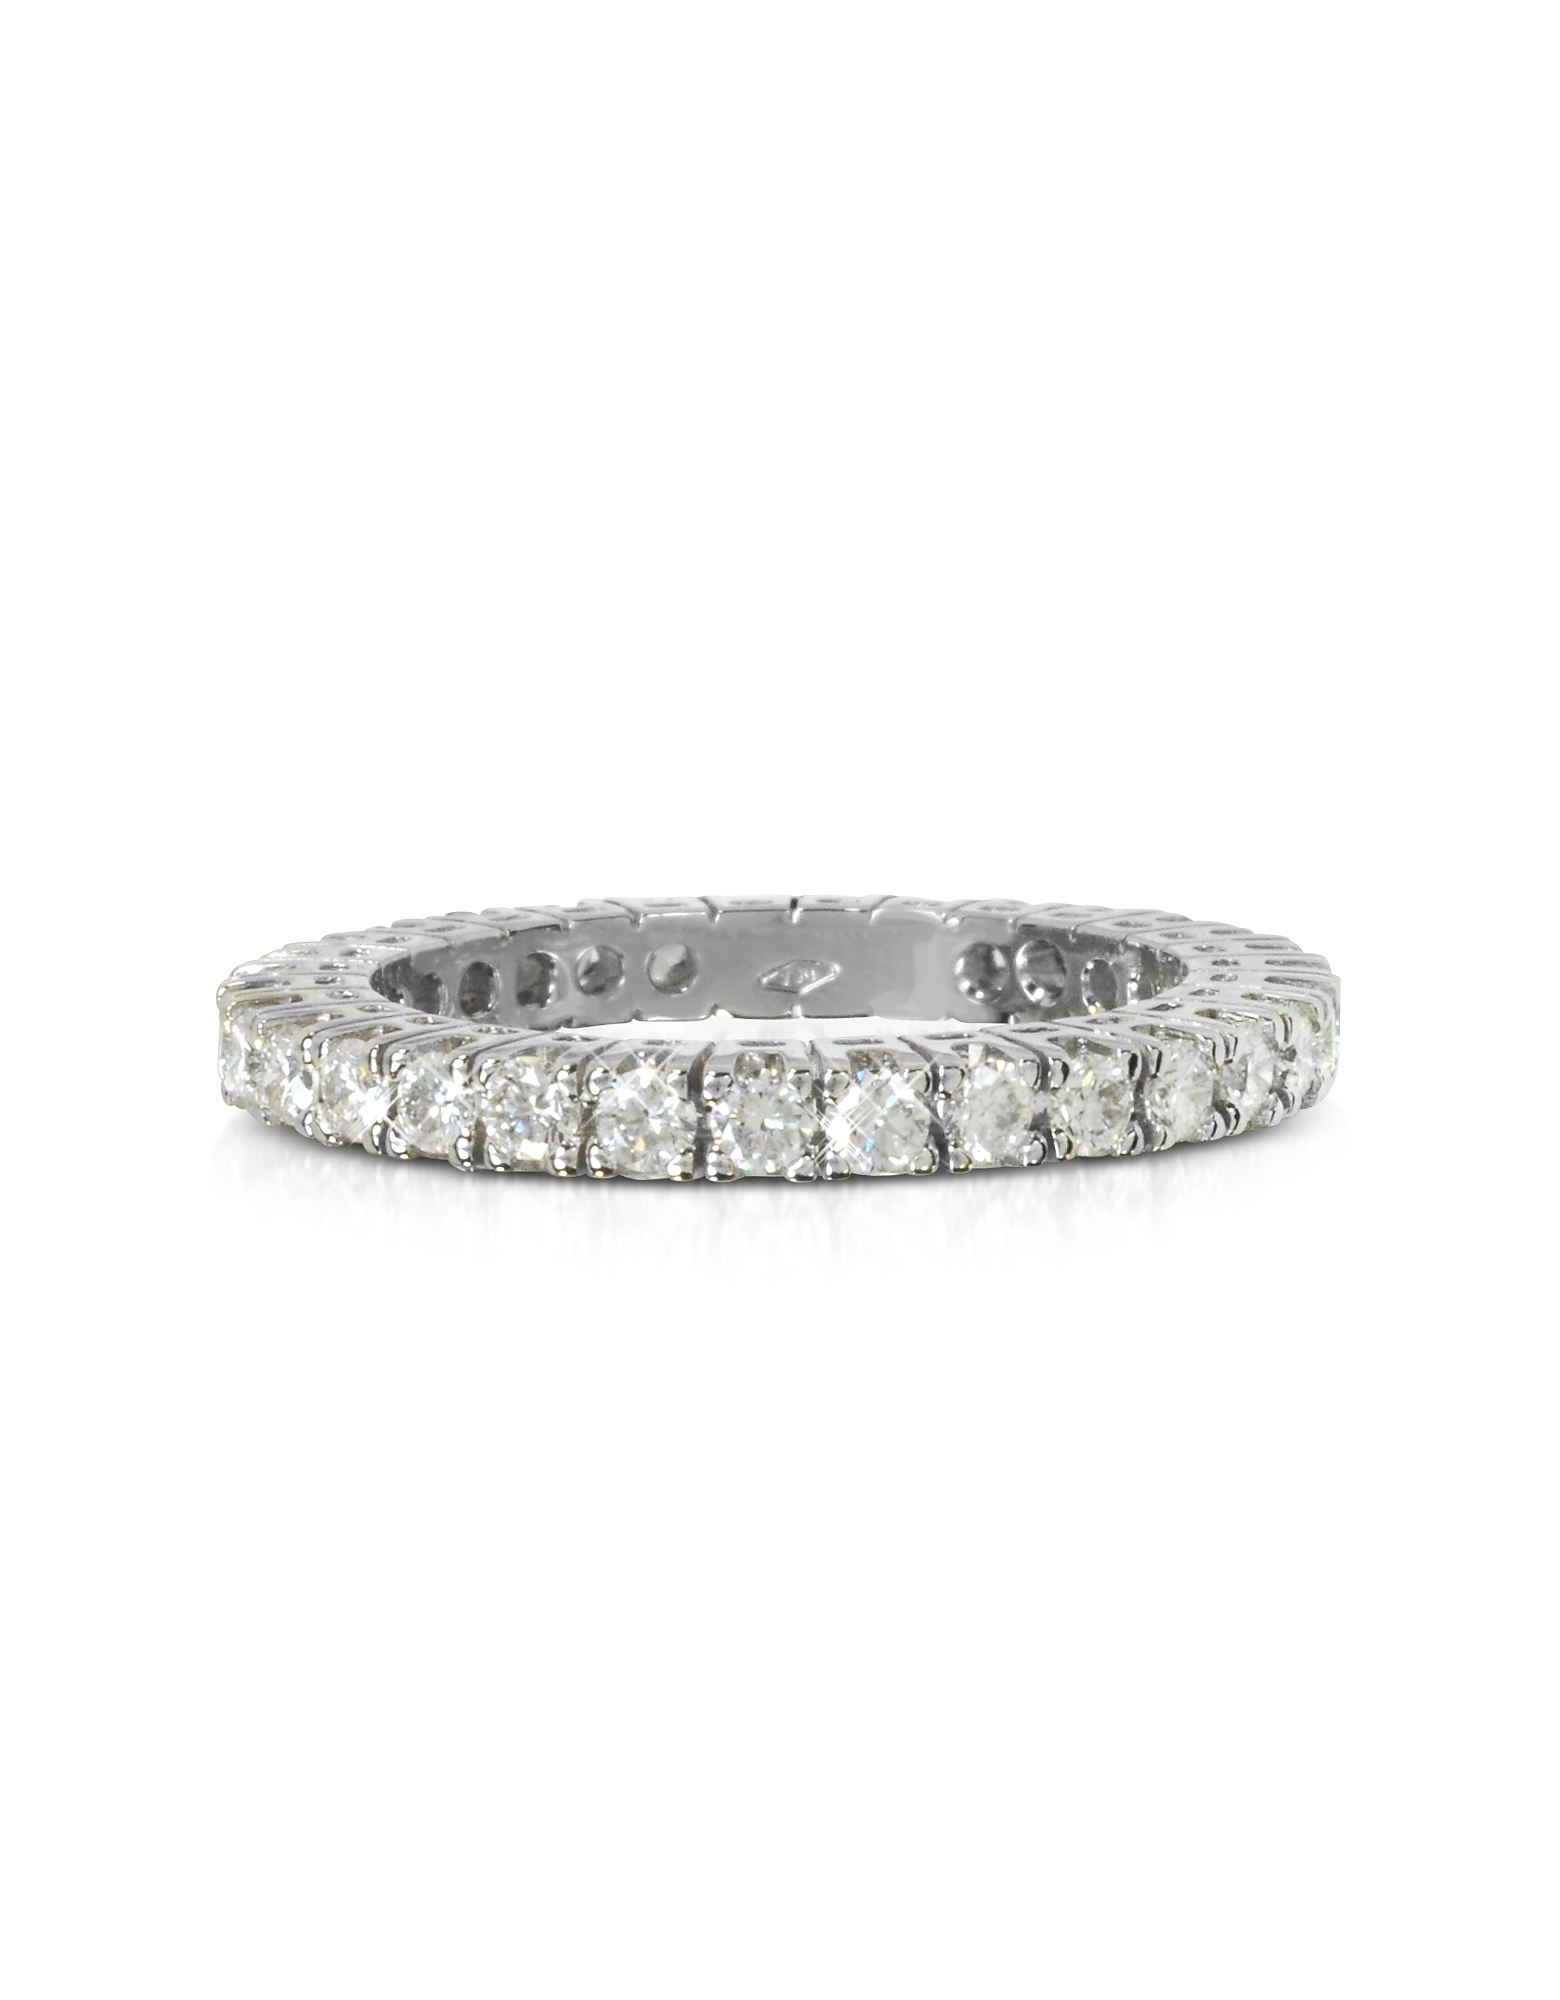 Forzieri Designer Rings, 0.98 ctw Diamond 18K White Gold Eternity Band